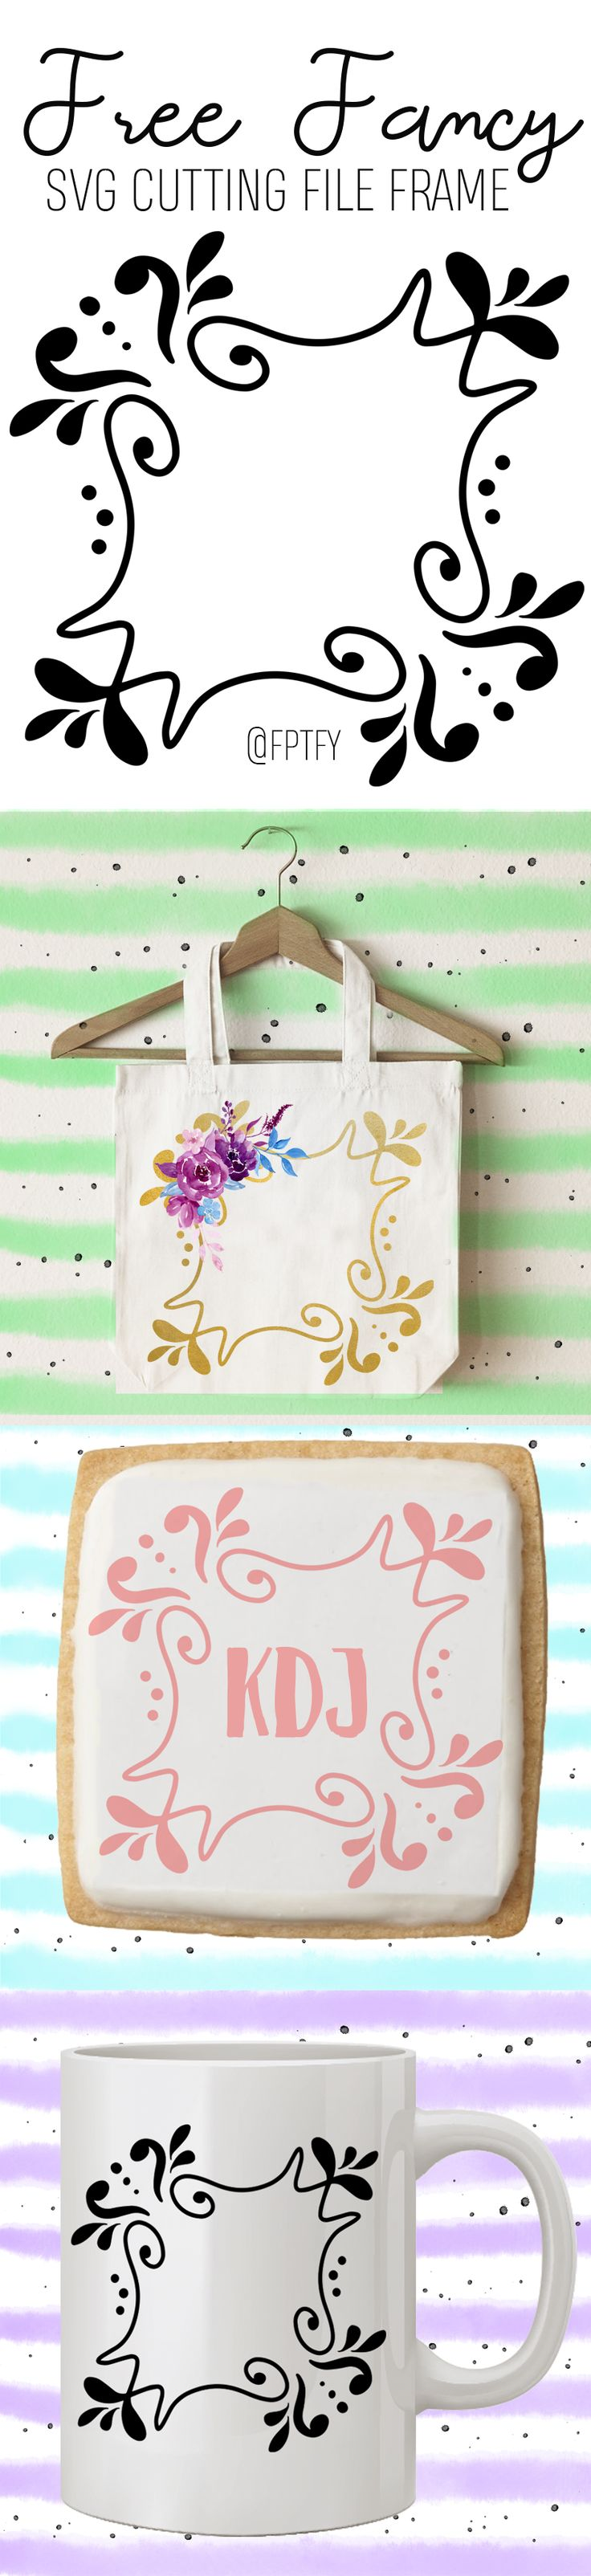 Free fancy SVG CUTTING FILE Frame - Free Pretty Things For You